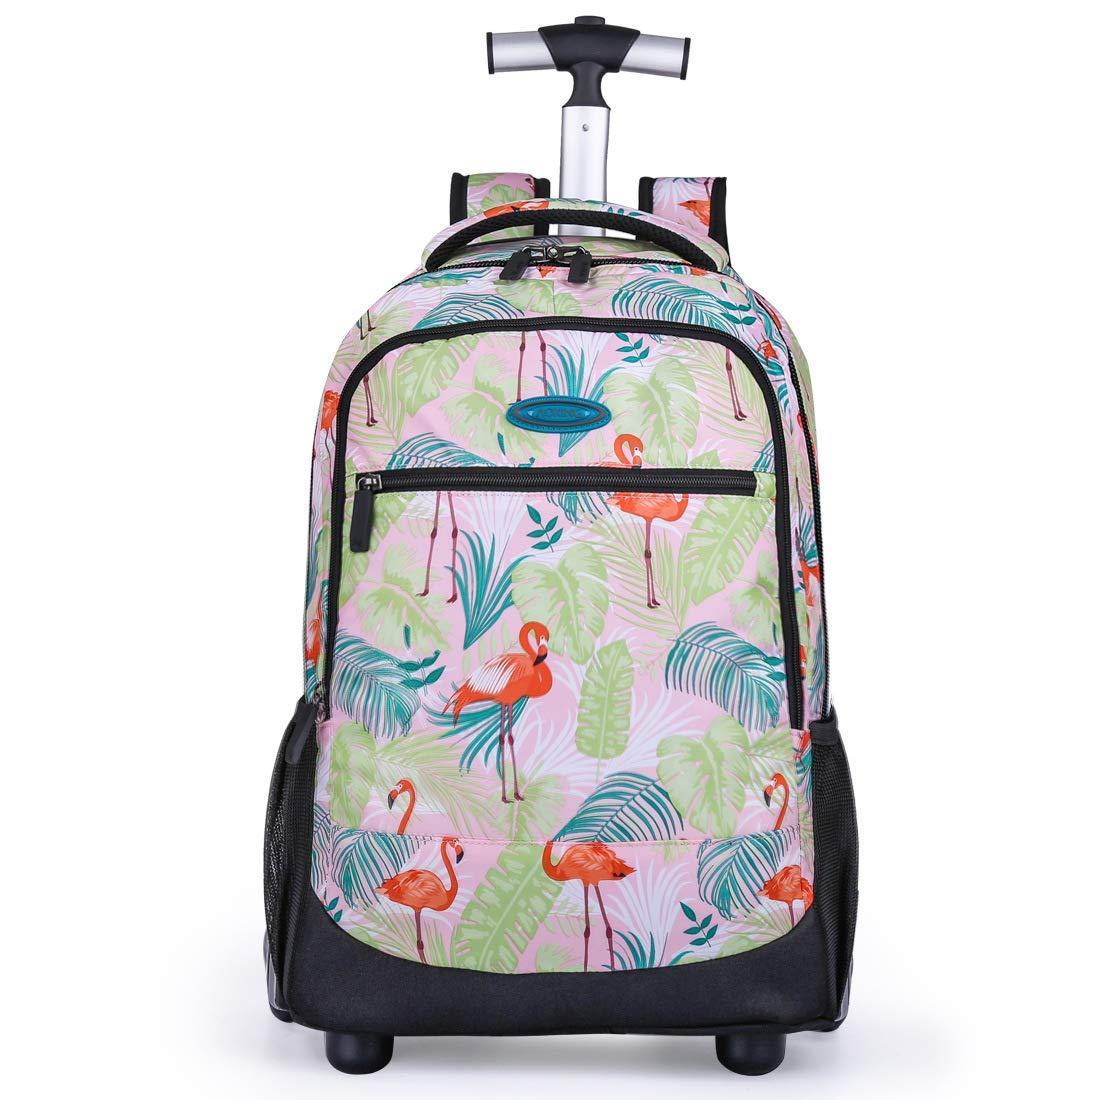 MARTER ZLX 2 Round Children's Trolley Bag, Male and Female Students with Wheel Print Bag Dual-use Travel Bag, Lightweight and Waterproof-5 by MARTER